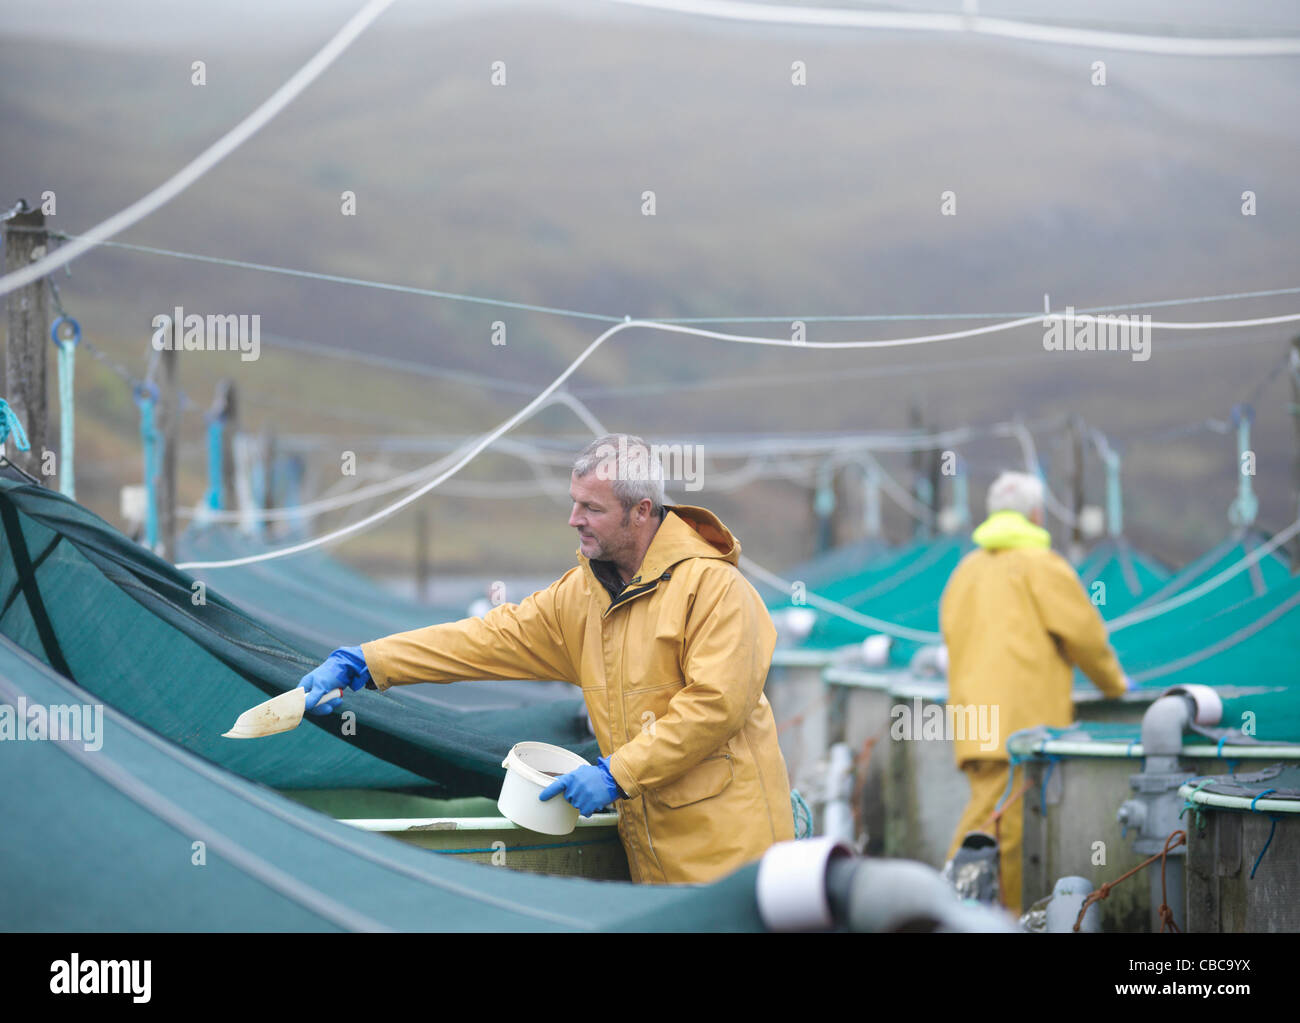 Workers feeding fish in farm - Stock Image